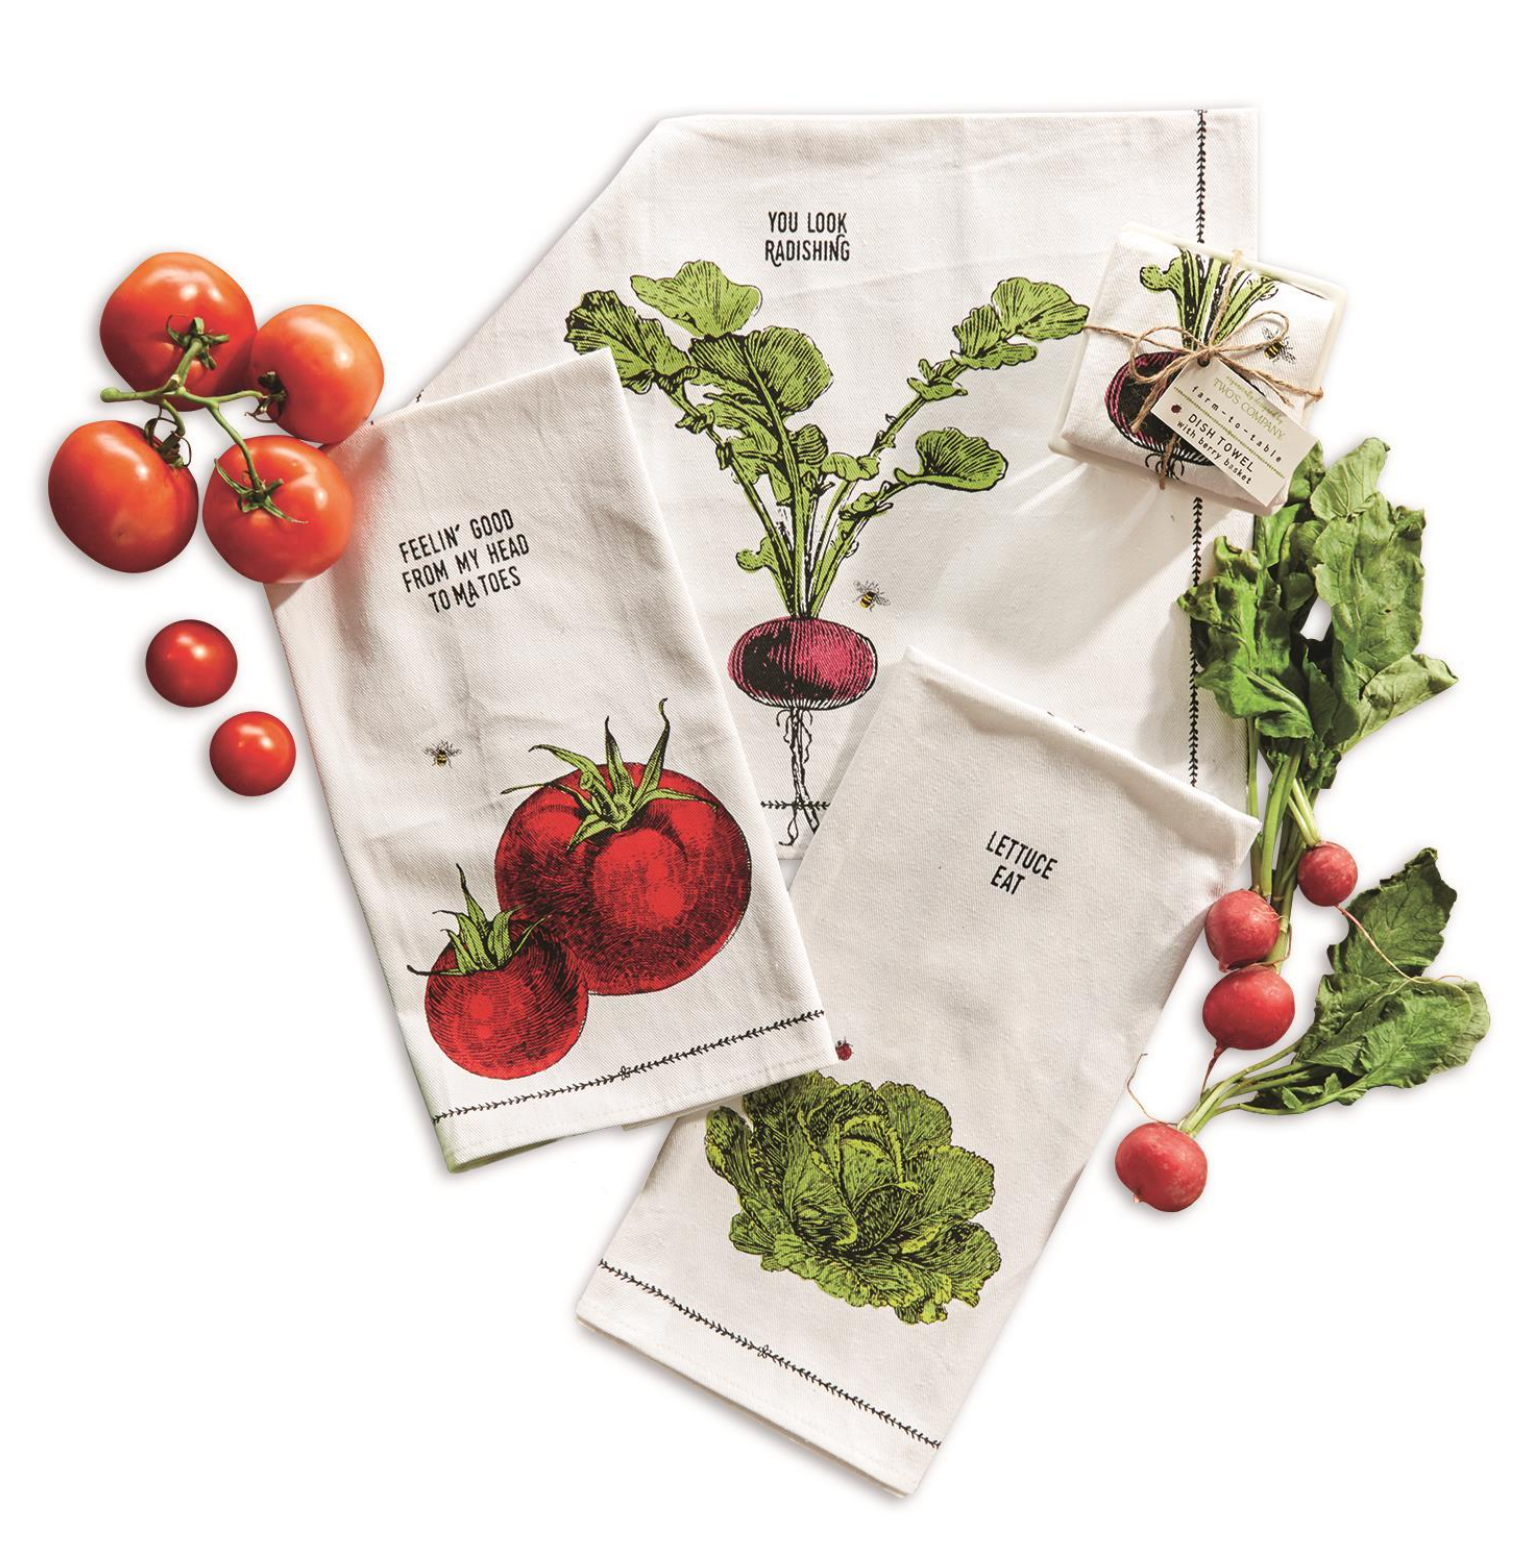 Dish Towel with Berry Bowl